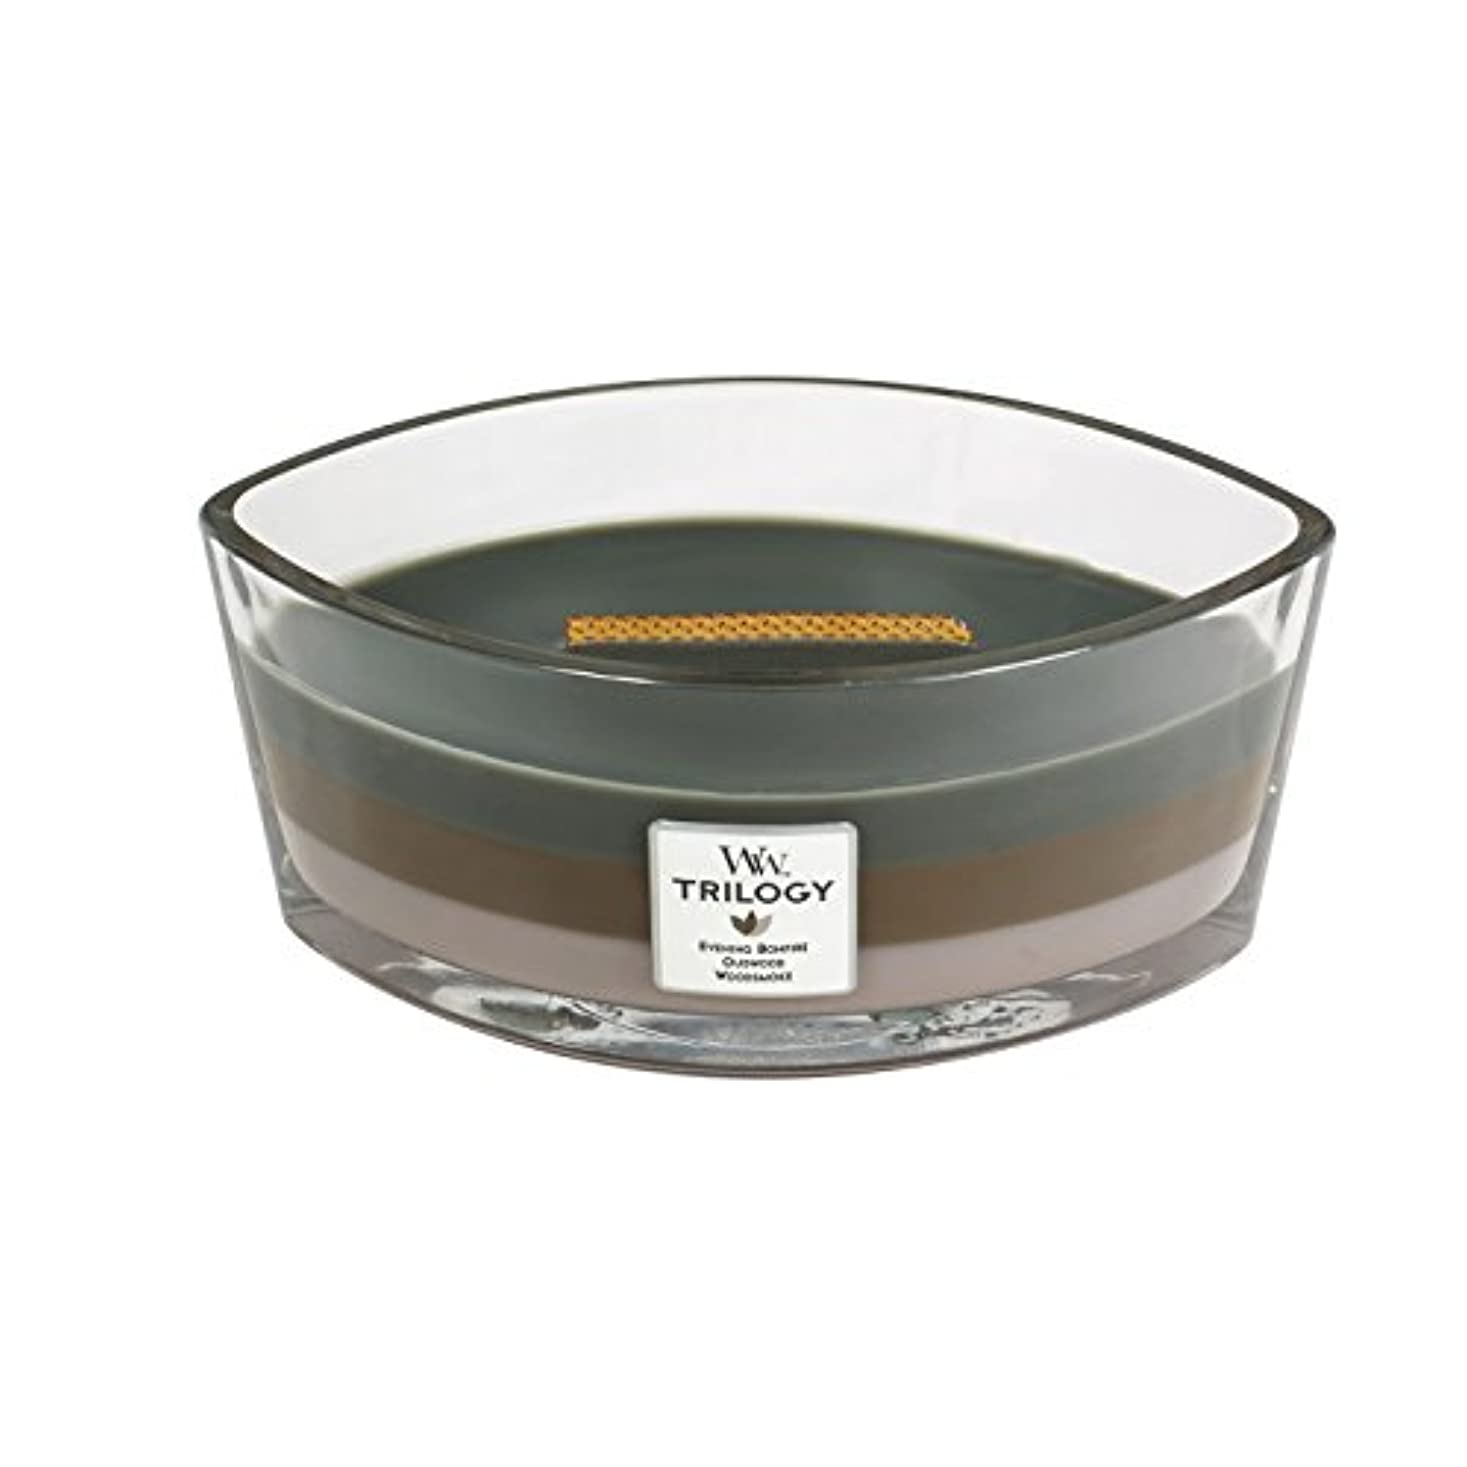 素朴な麻痺させる軽蔑するWoodWick Trilogy cosy CABIN, 3-in-1 Highly Scented Candle, Ellipse Glass Jar with Original HearthWick Flame, Large...